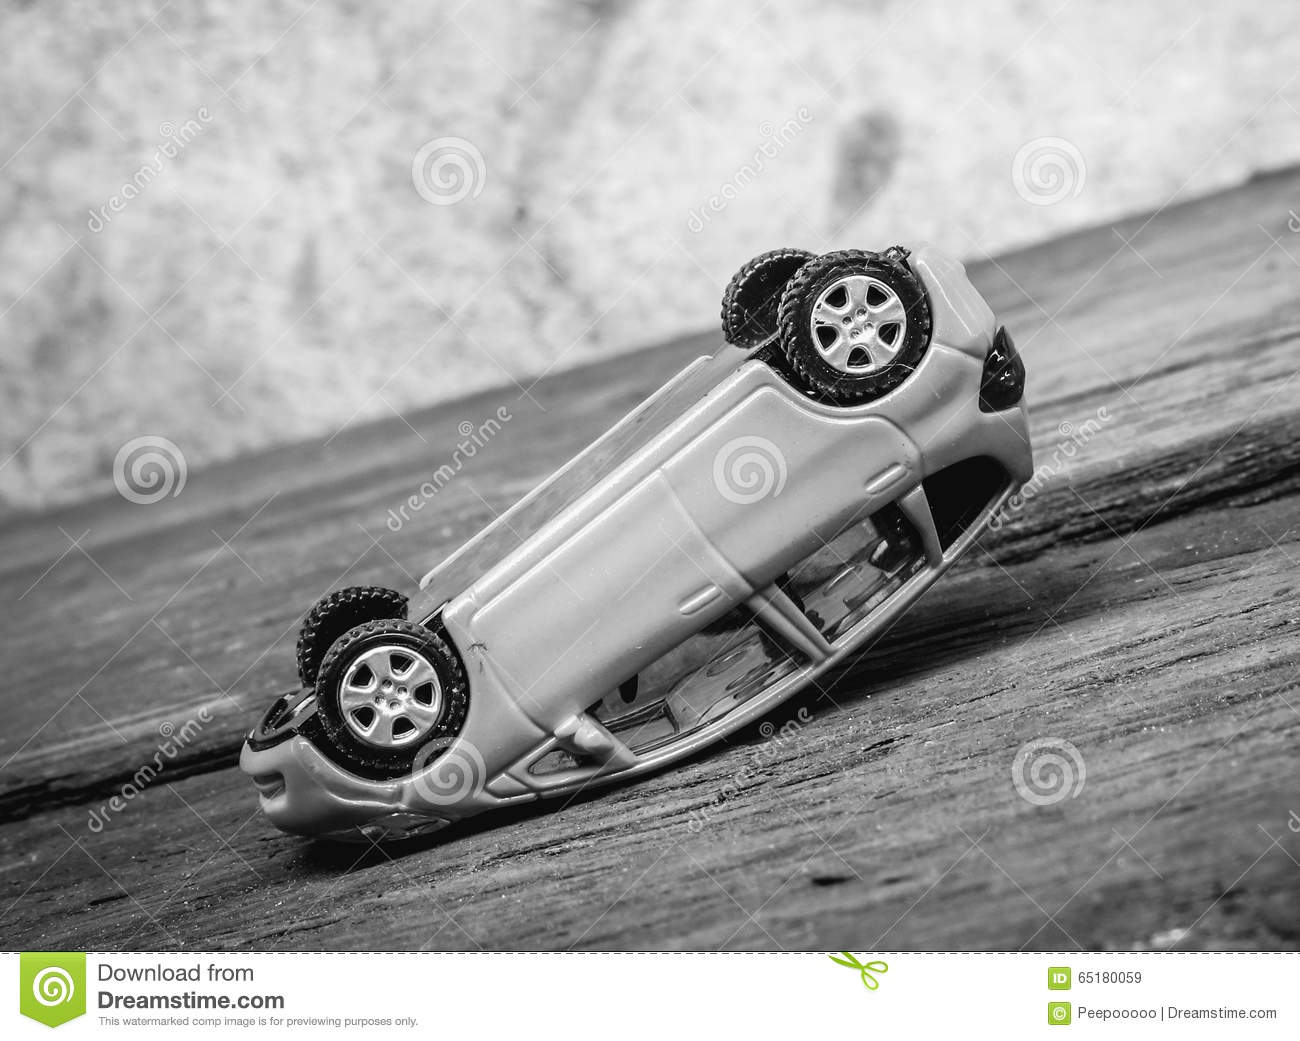 Toy Car Accident Stock Image Image Of Cracked Danger 65180059